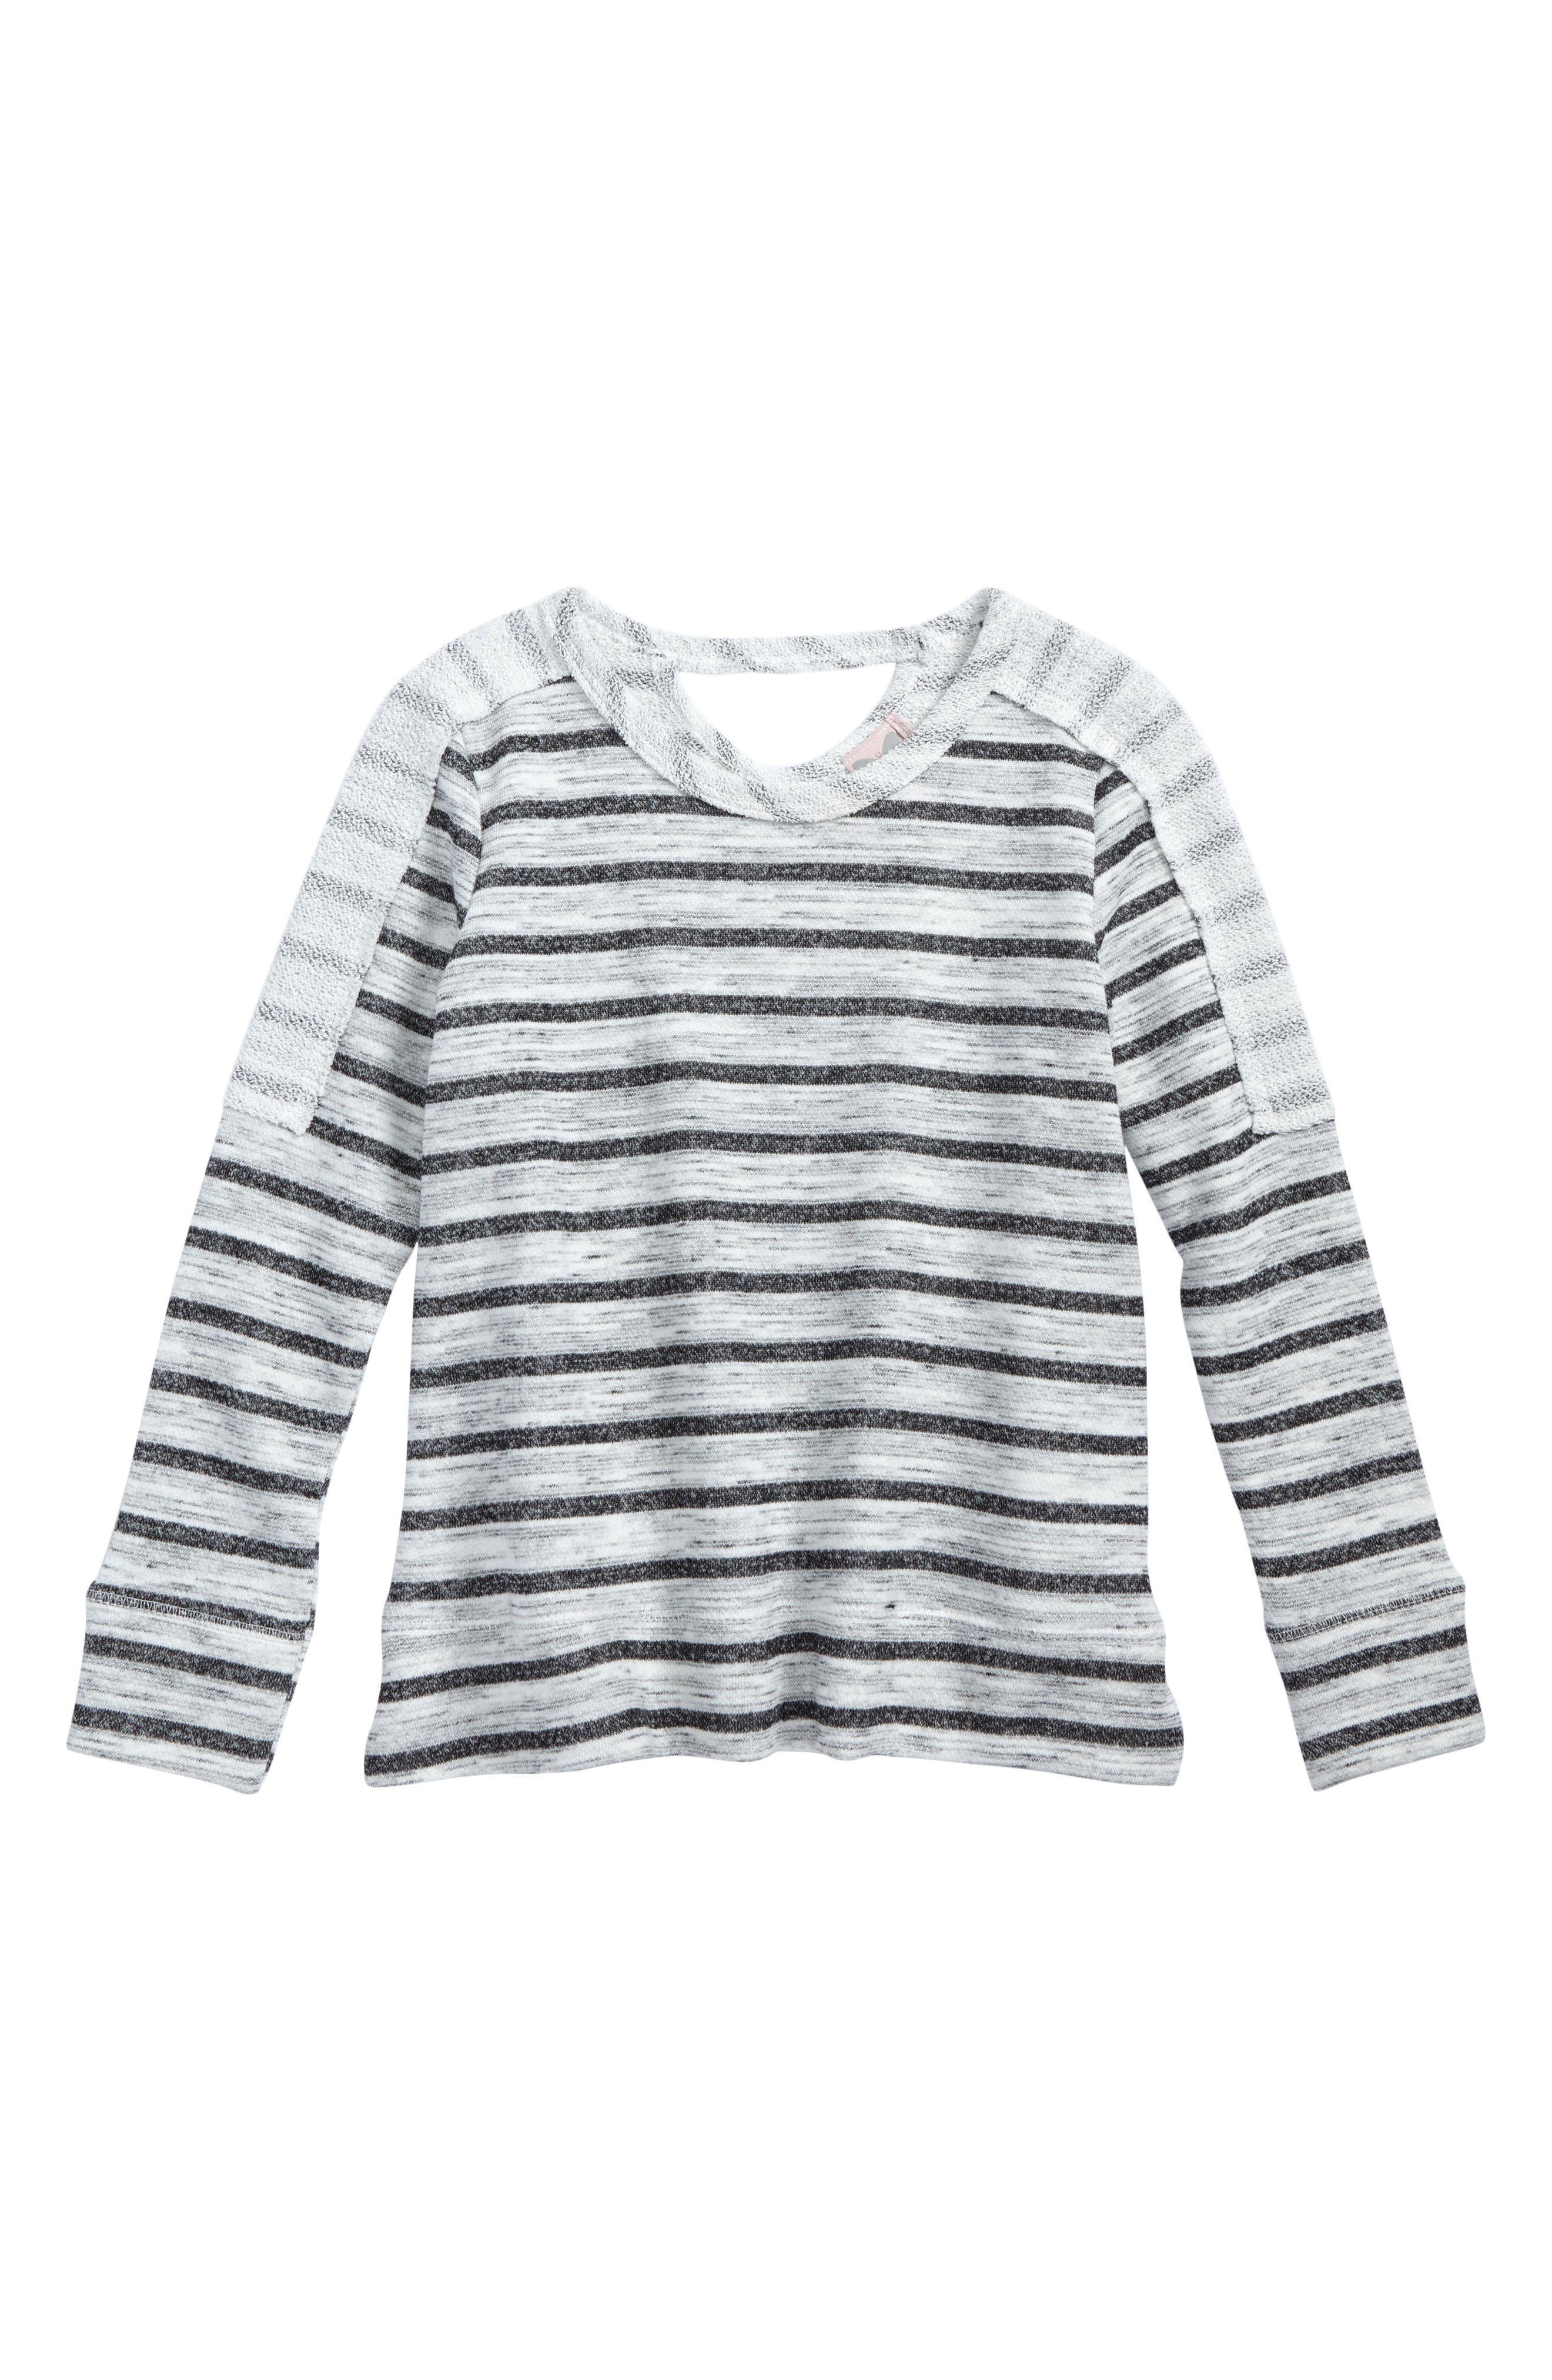 Main Image - For All Seasons Mixed Media Stripe Top (Big Girls)